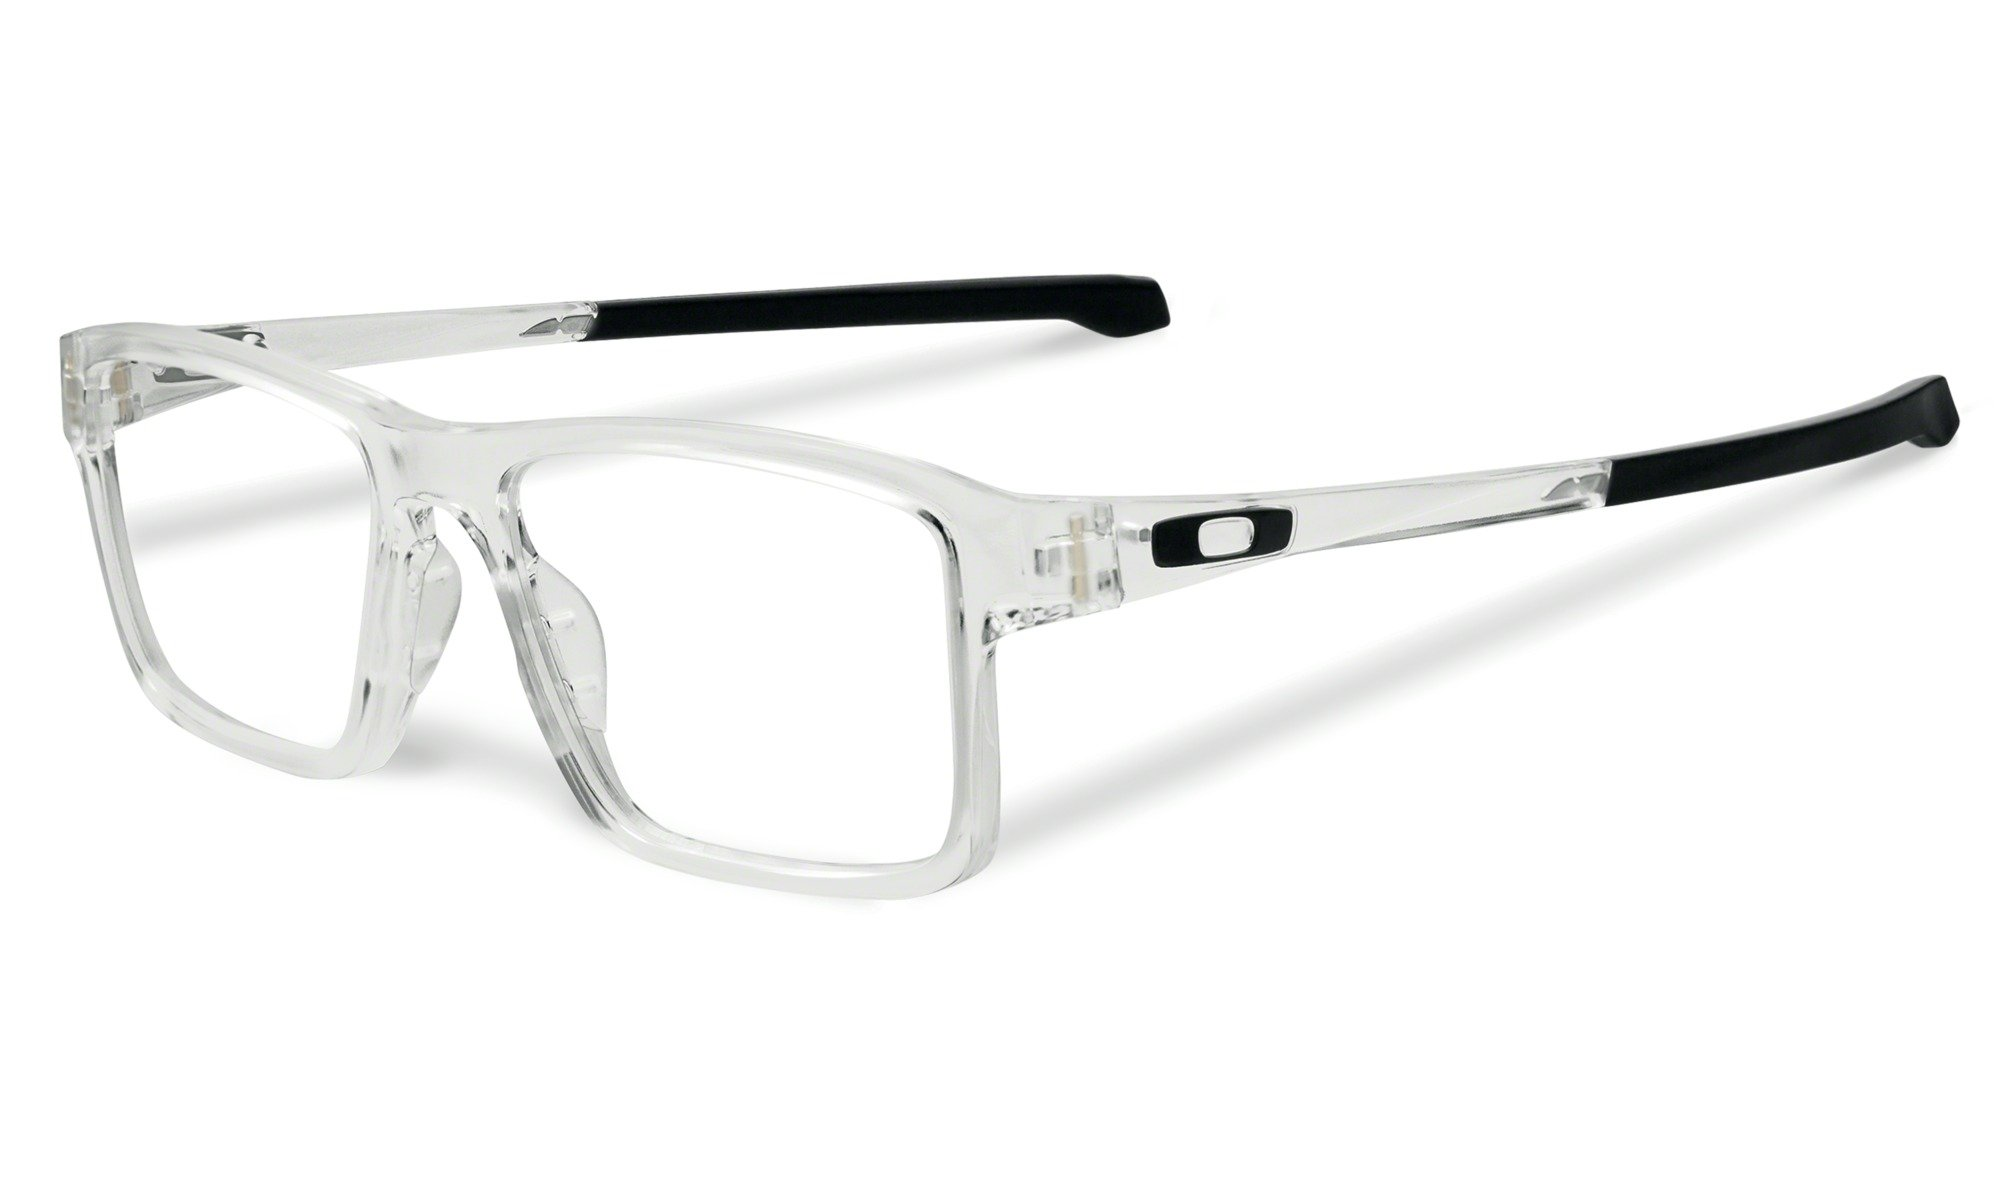 7d0d0e7c600 New Oakley Prescription Eyeglasses - Chamfer 2.0 OX8040 02 - Frost (54-15-